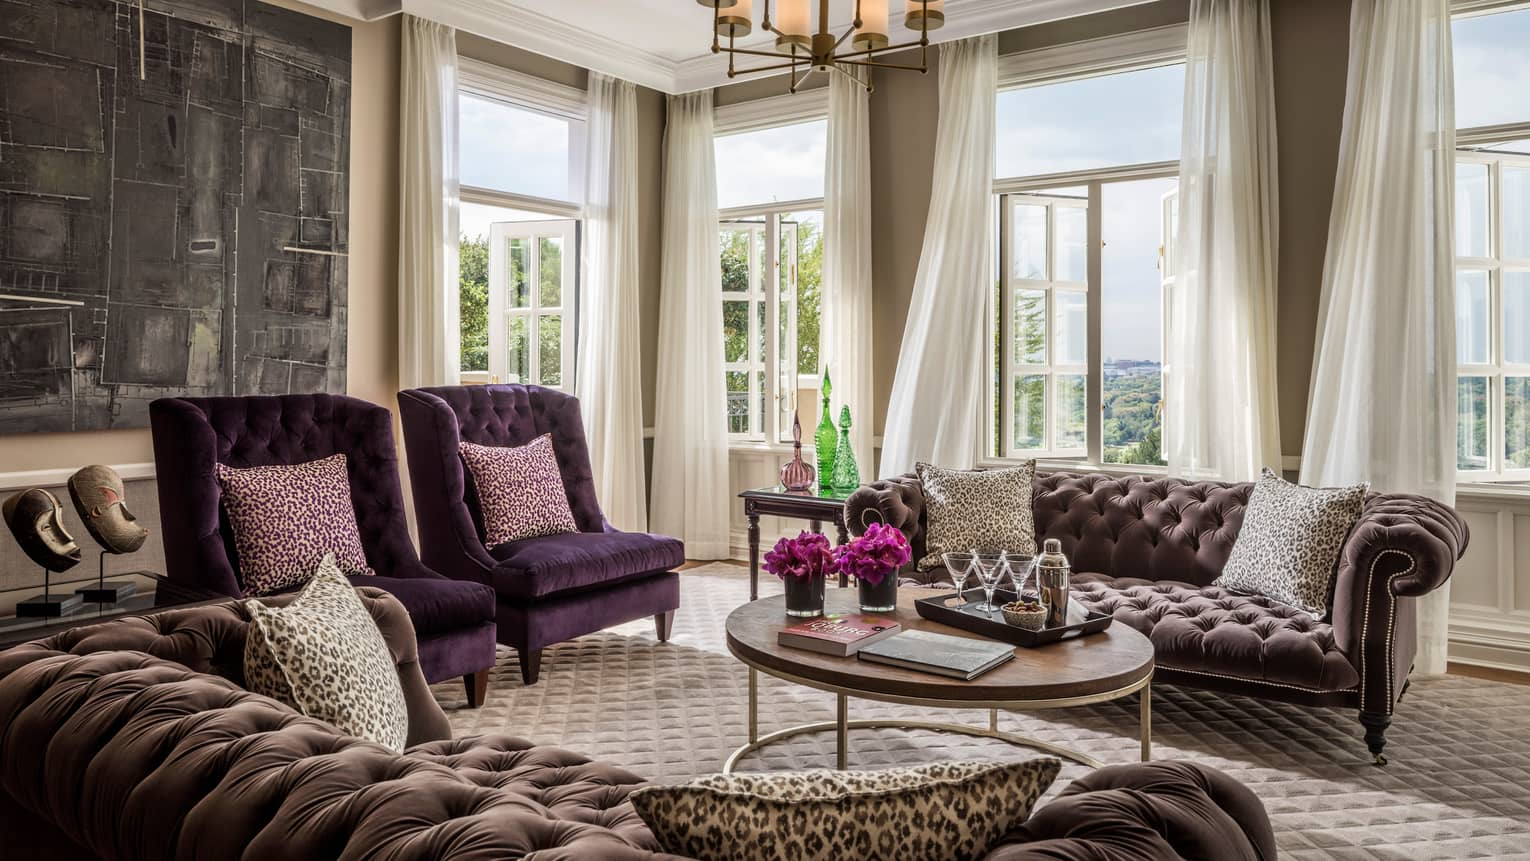 Presidential Suite tufted velvet sofas and armchairs around coffee table. sunny corner windows, curtains